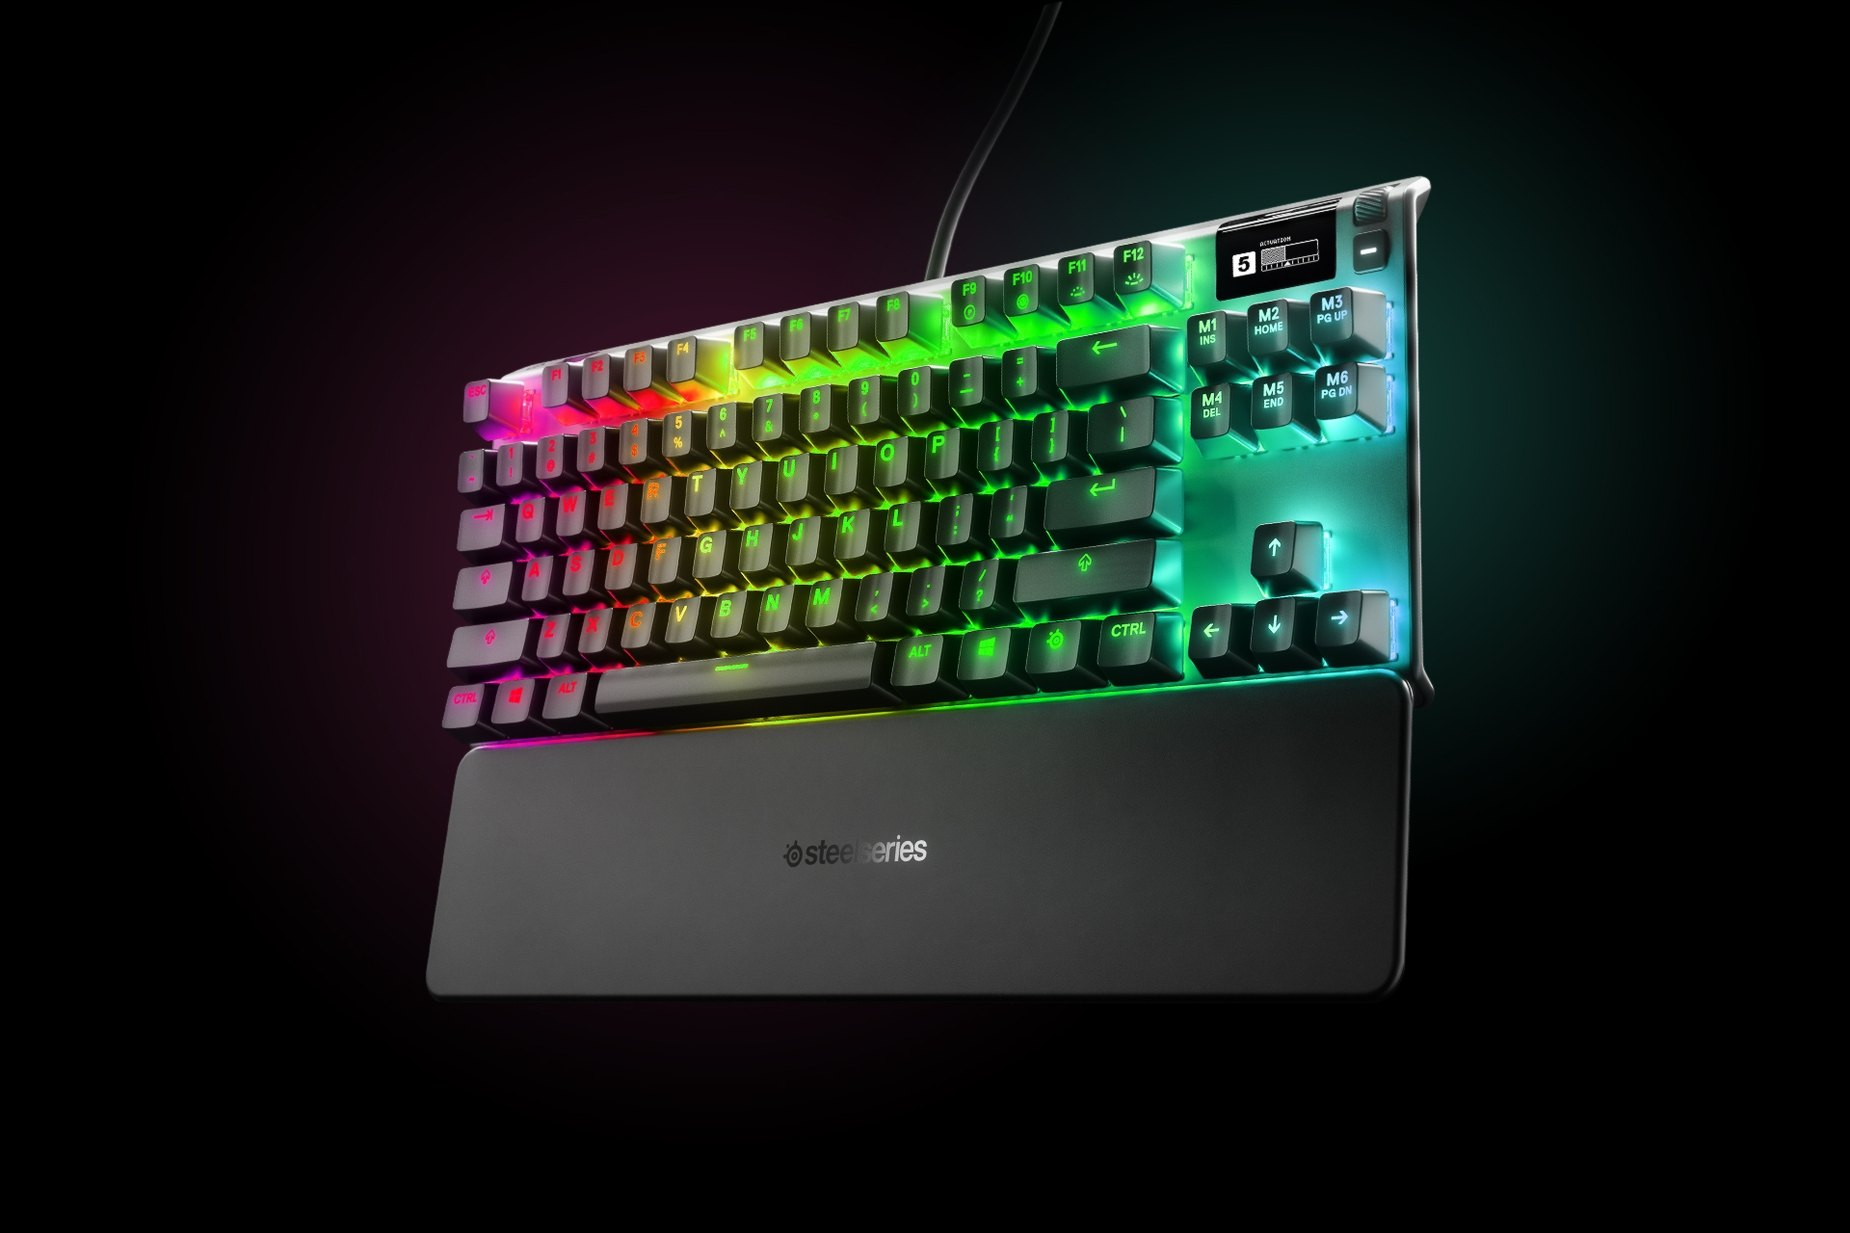 Немецкий - Apex Pro TKL gaming keyboard with the illumination lit up on dark background, also shows the OLED screen and controls used to change settings, switch actuation, and adjust audio